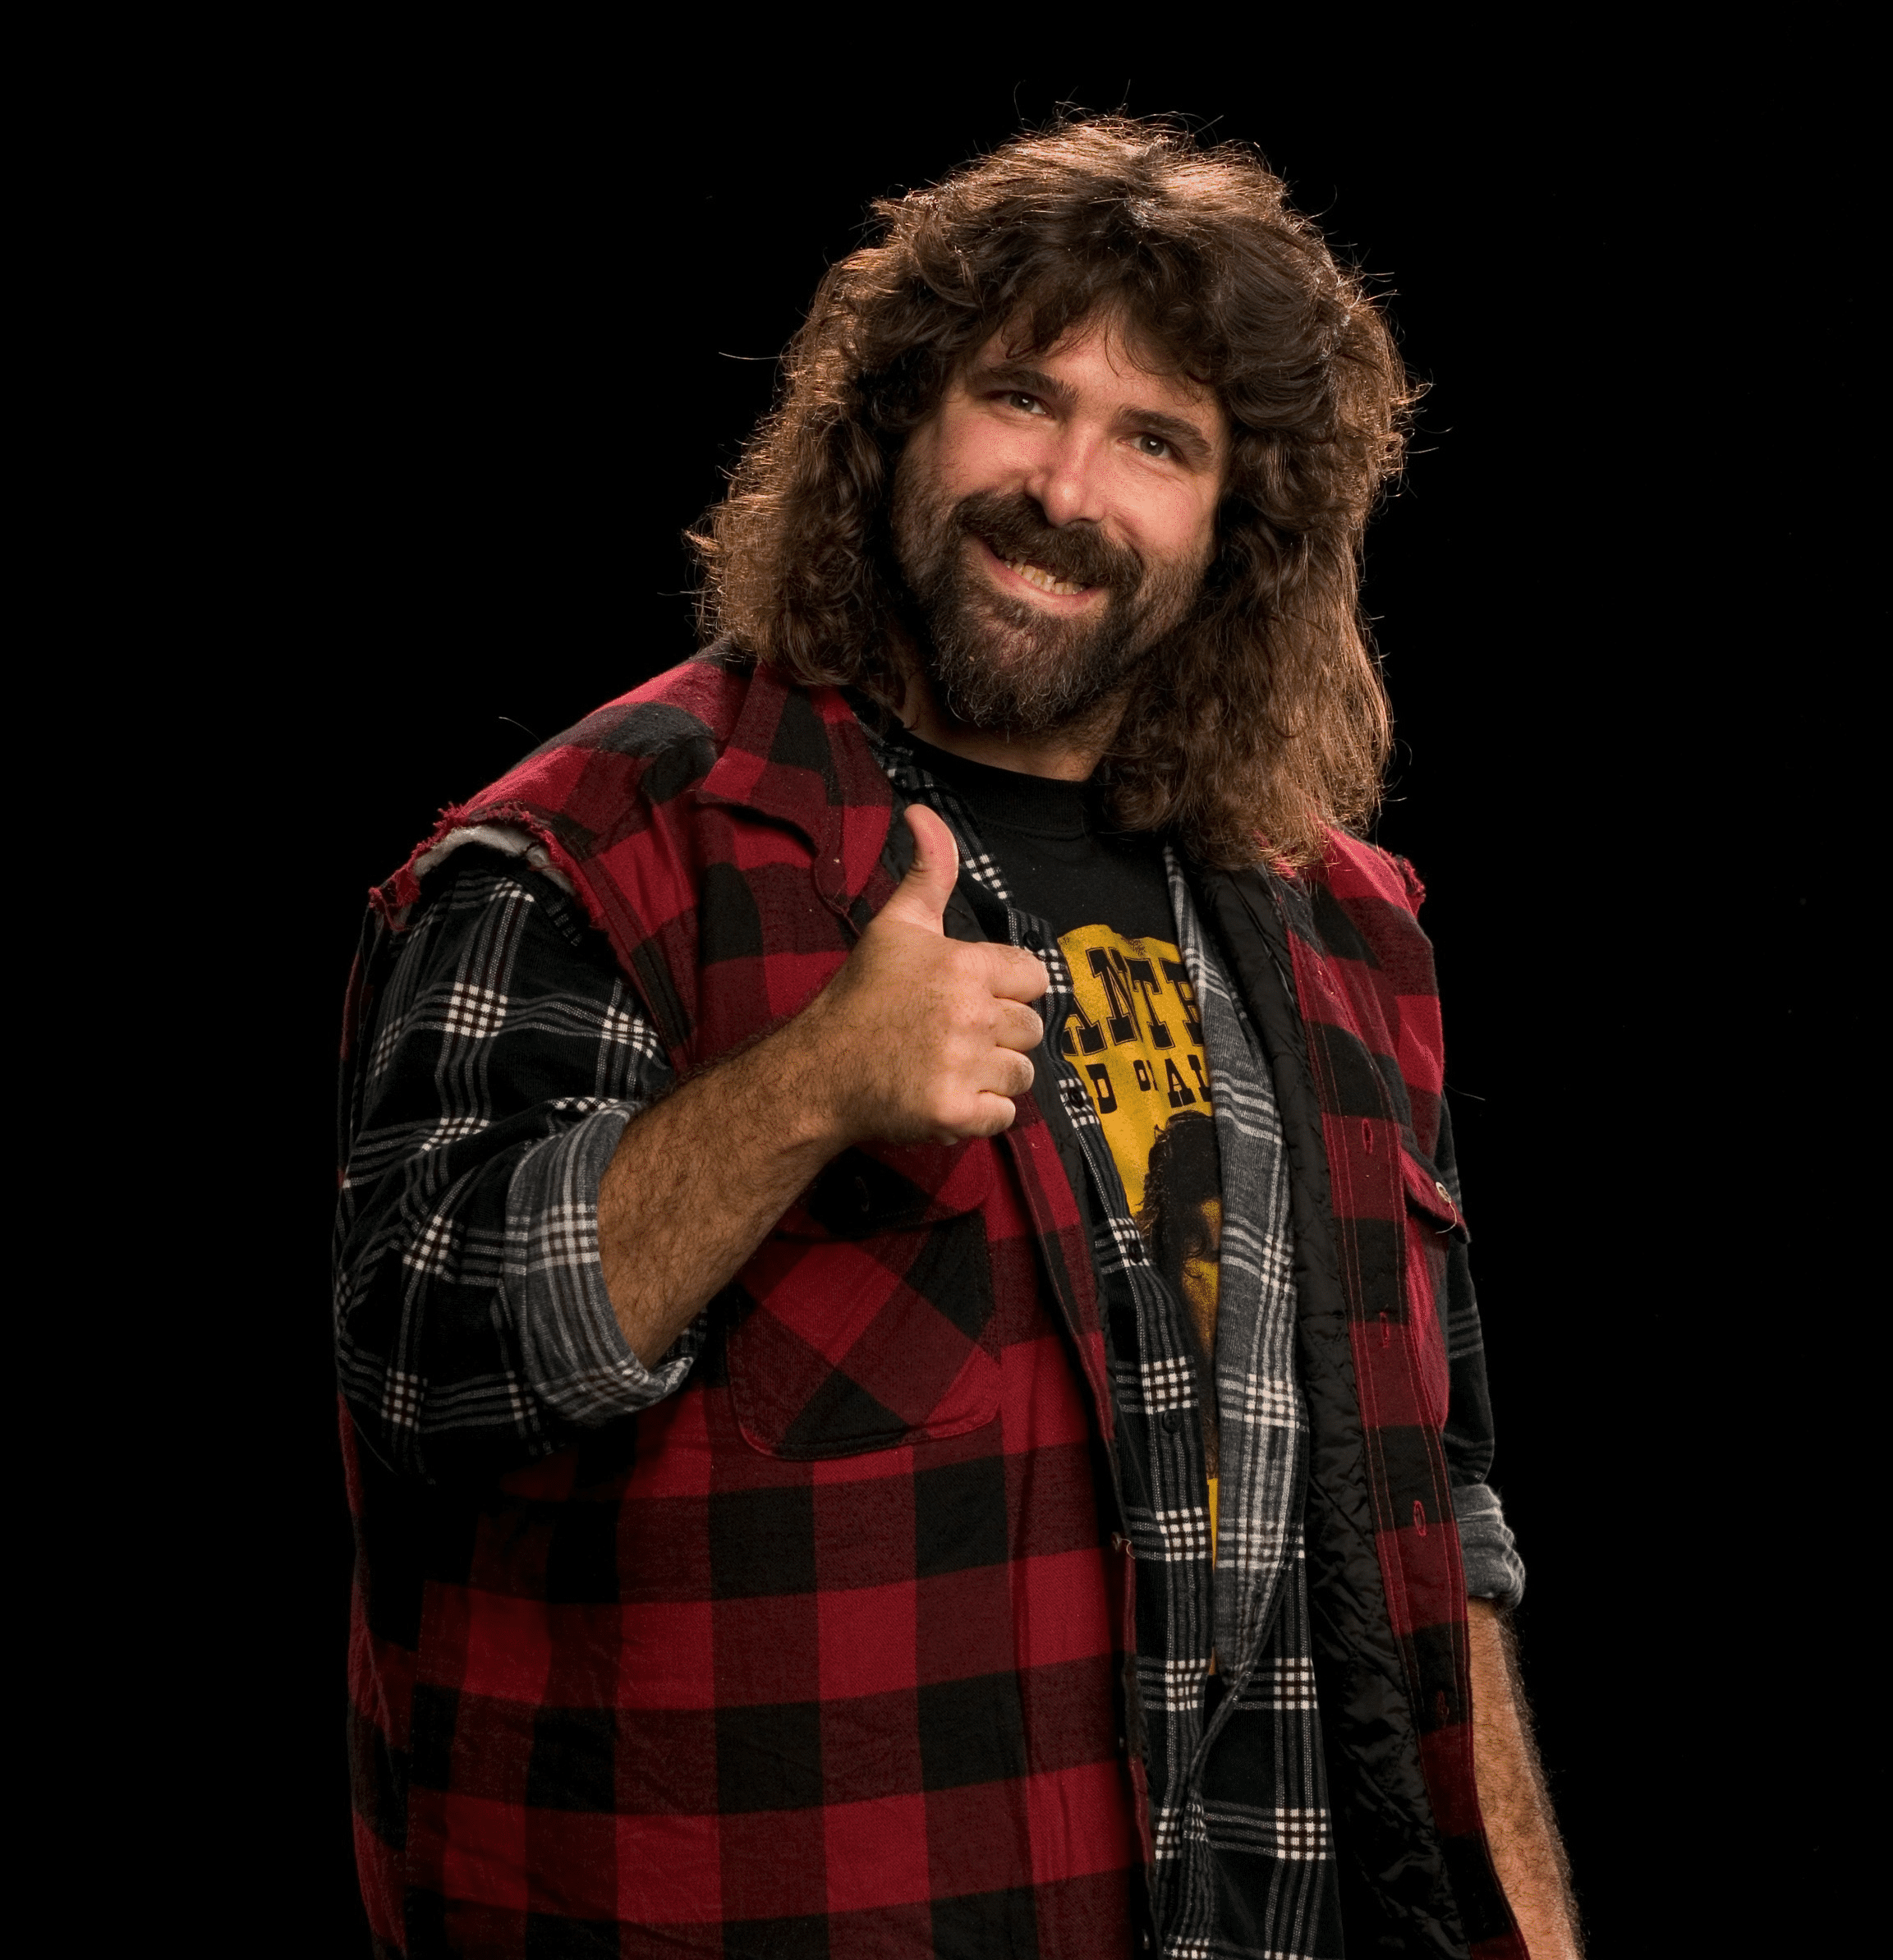 Interview Mick Foley